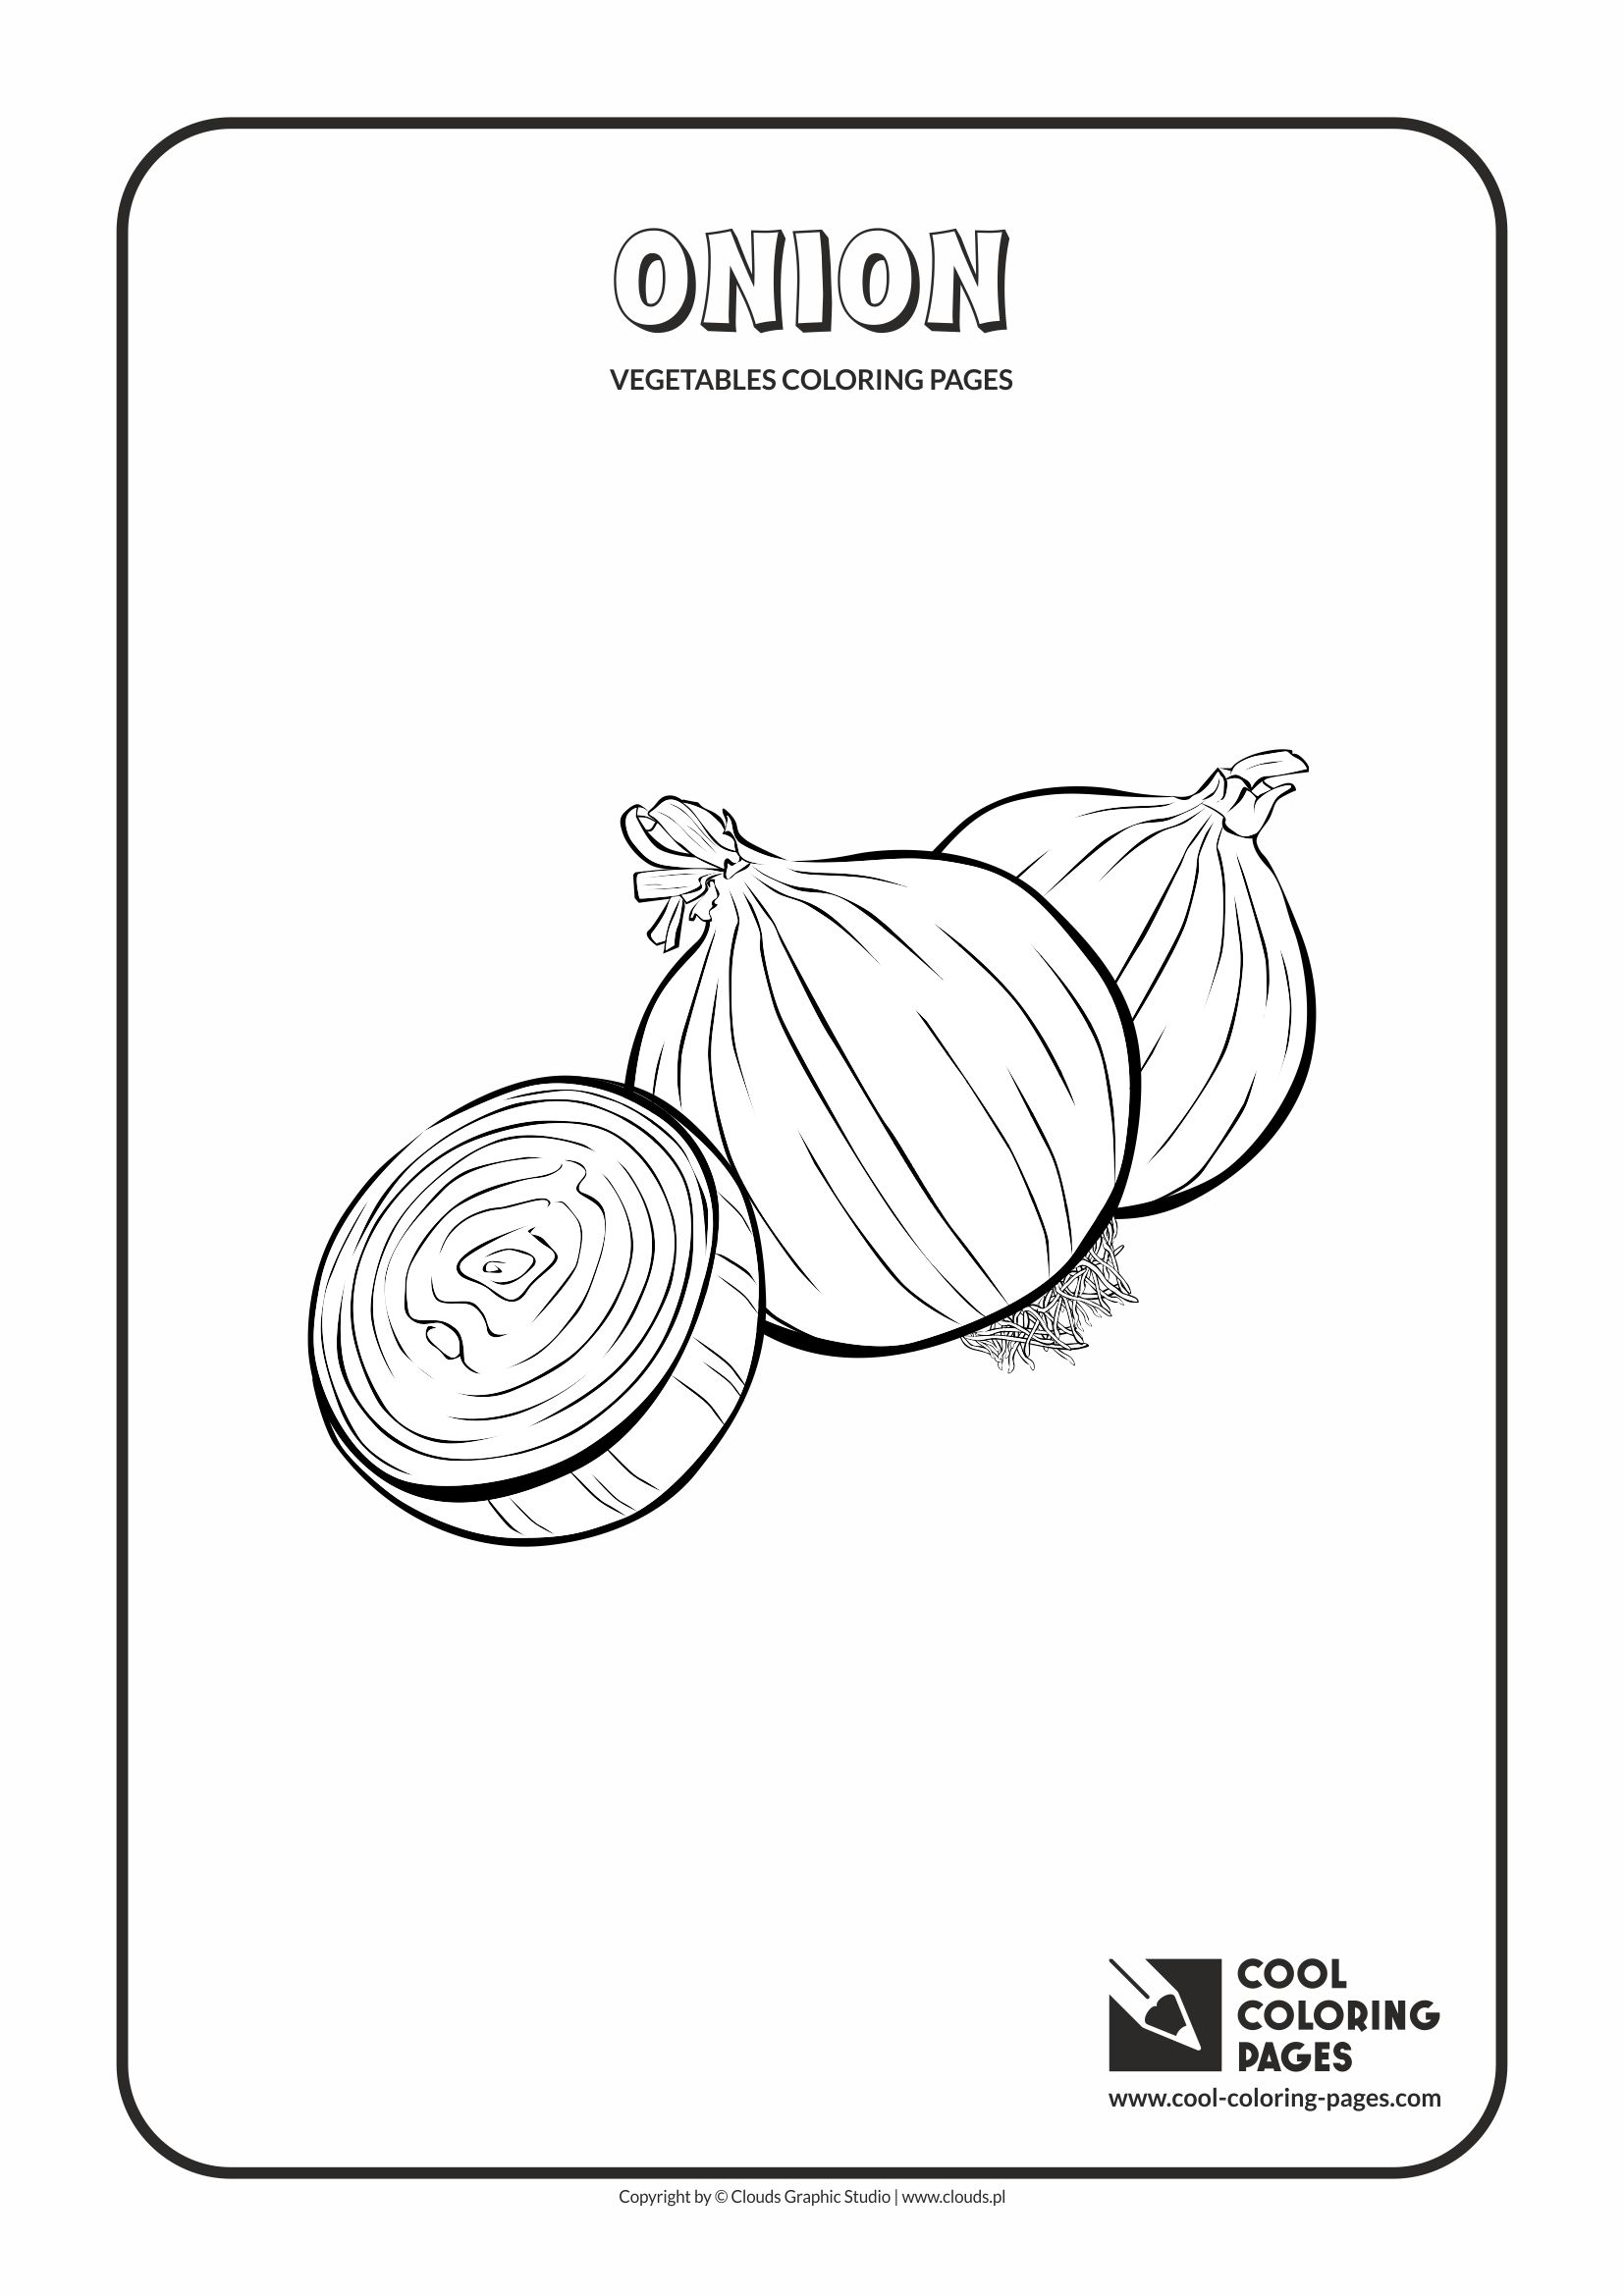 onion coloring page cool coloring pages